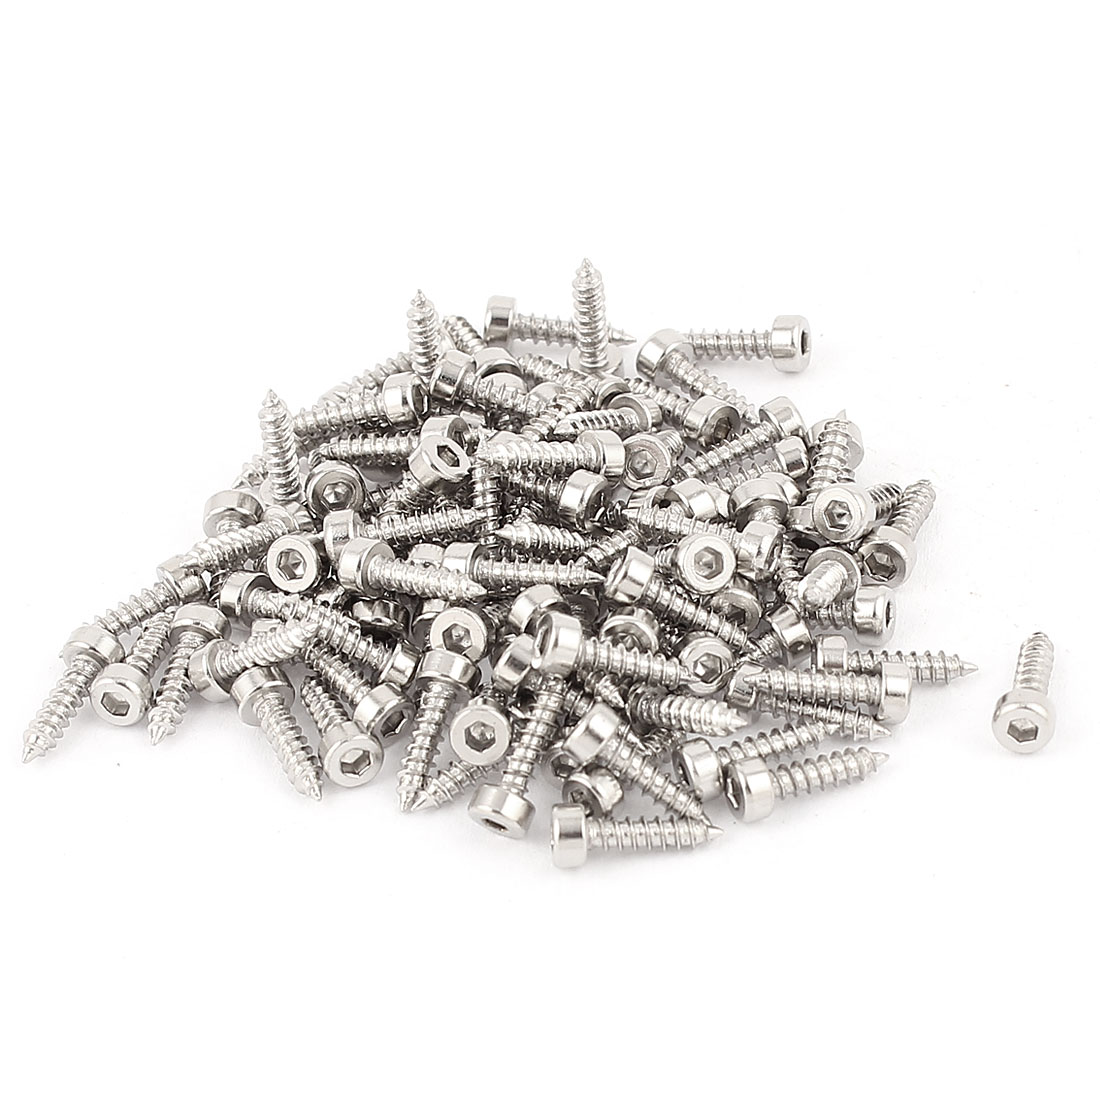 2mm x 8mm Threaded Nickel Plated Hex Head Self Tapping Screws 100 Pcs